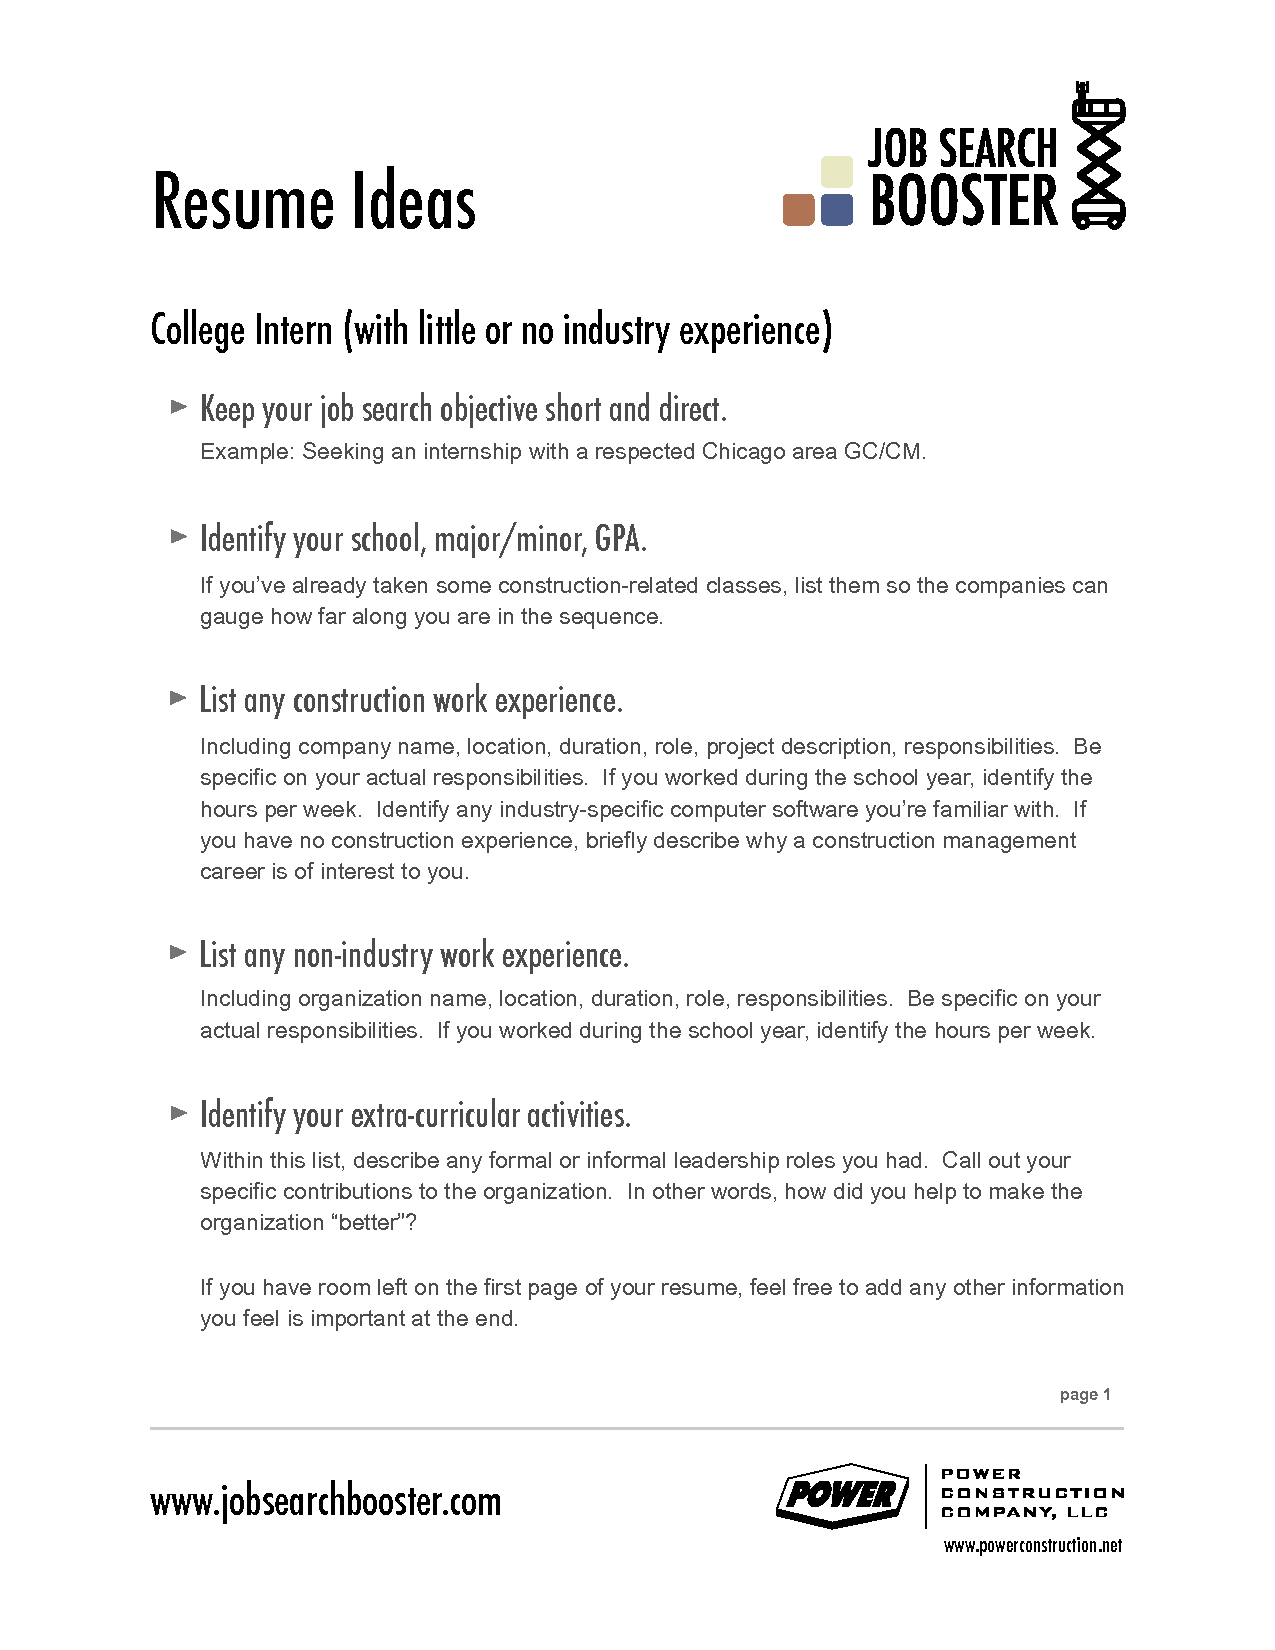 Resume Objective Examples. Job Resume Objective Examples